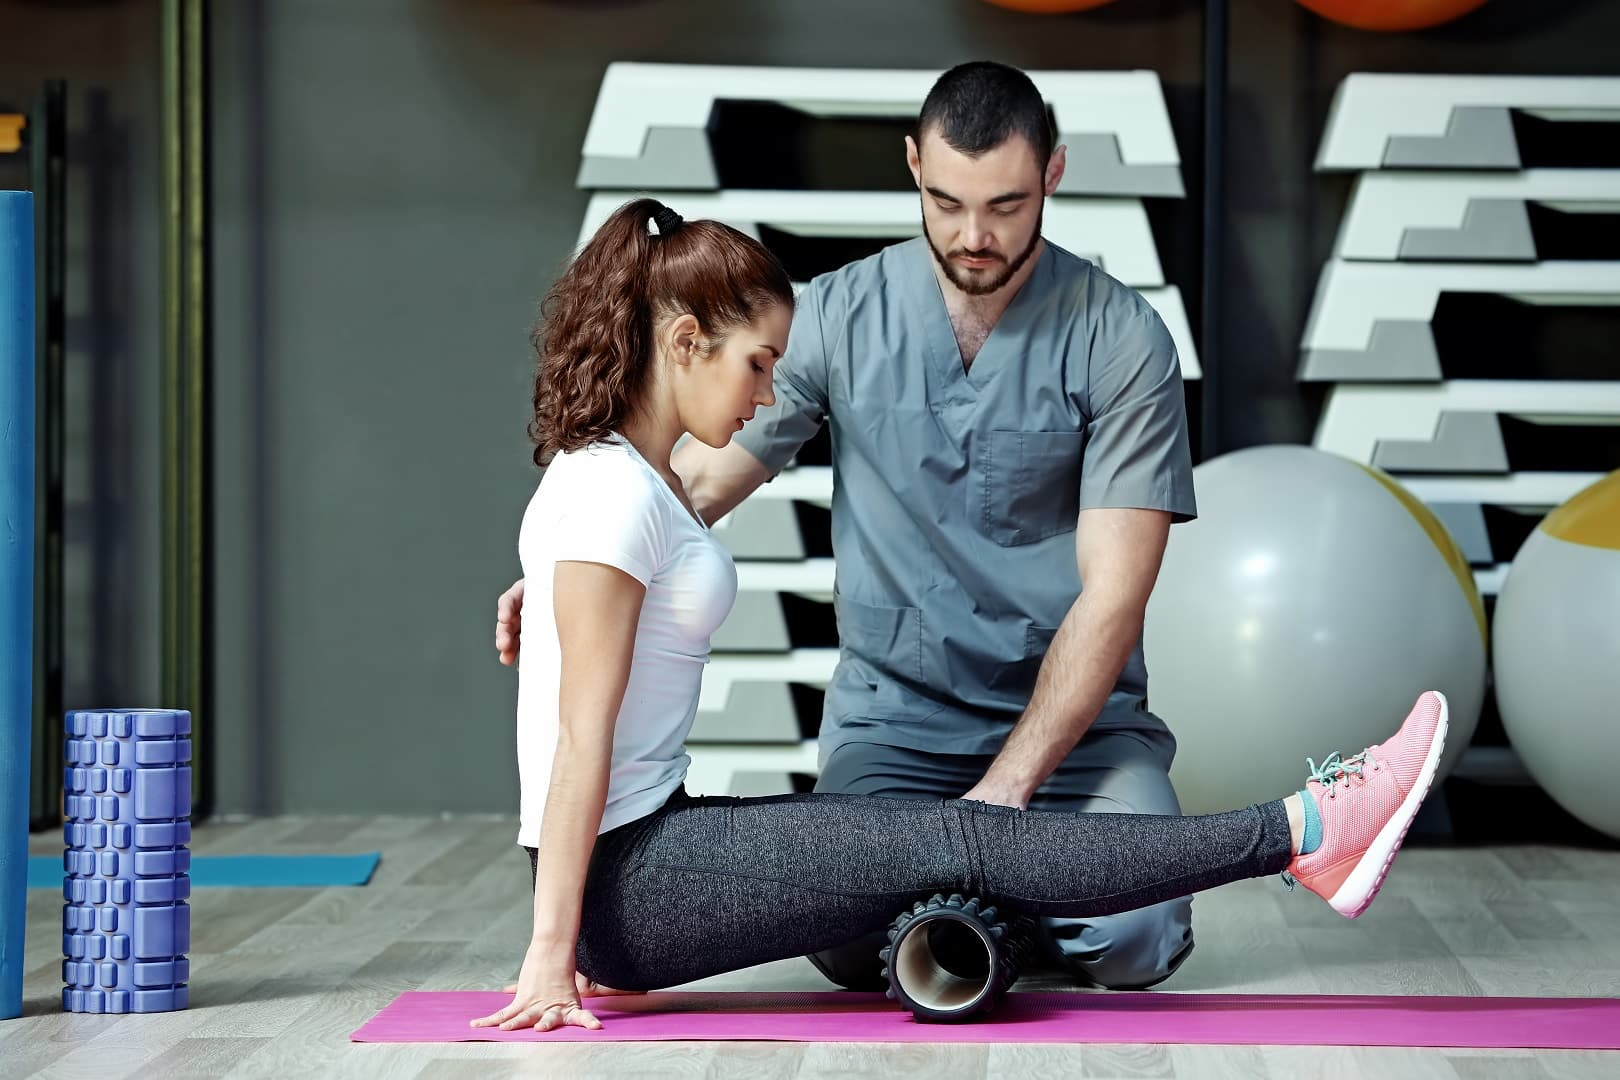 Exercise Physiology Online in Australia